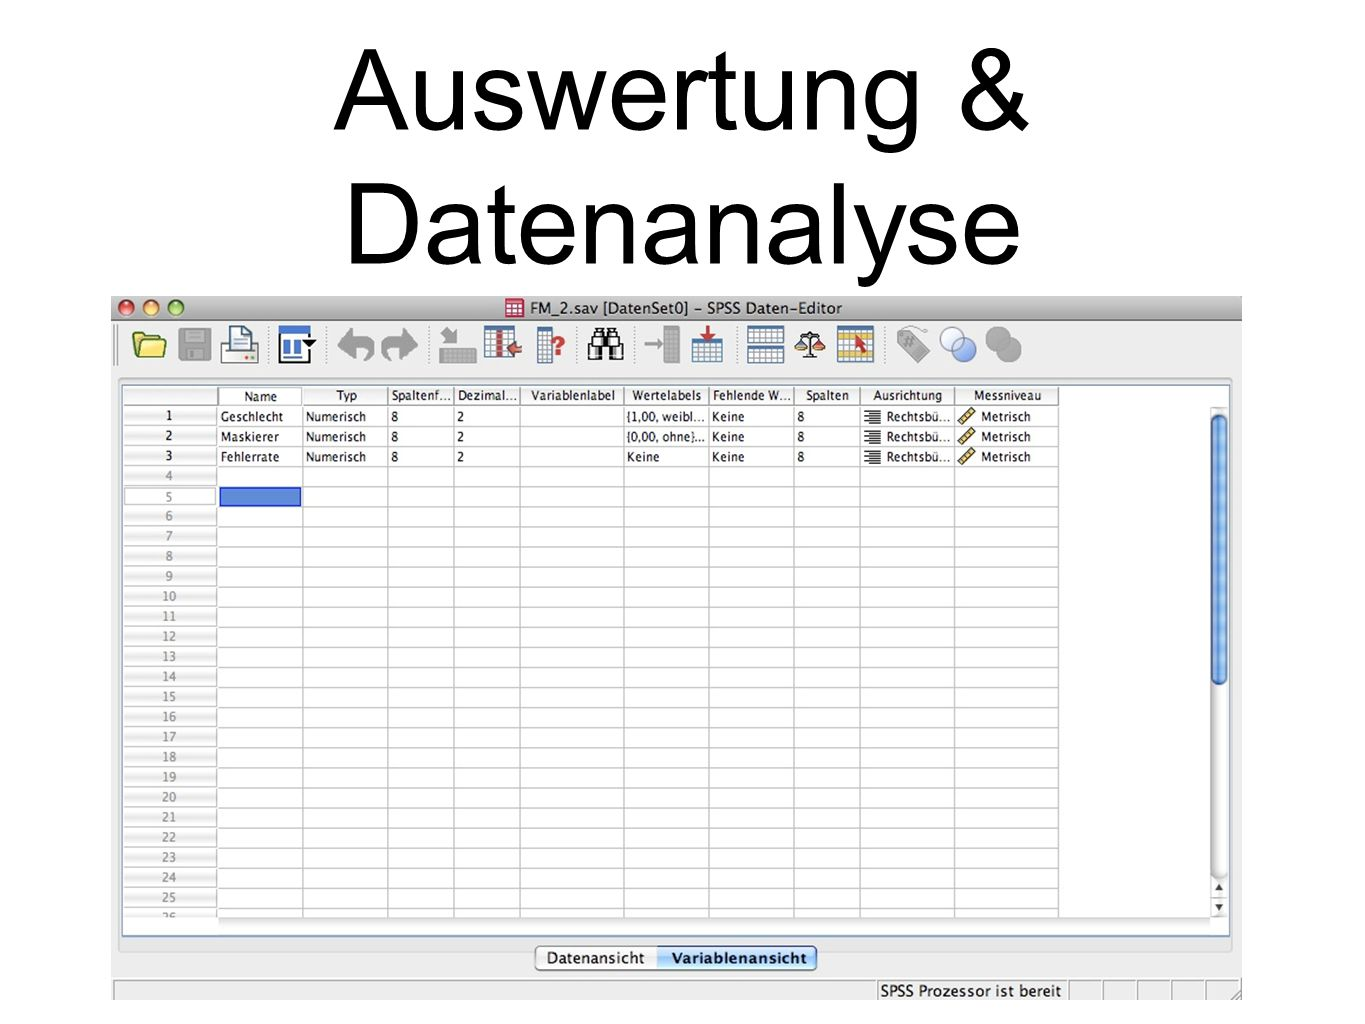 Auswertung & Datenanalyse